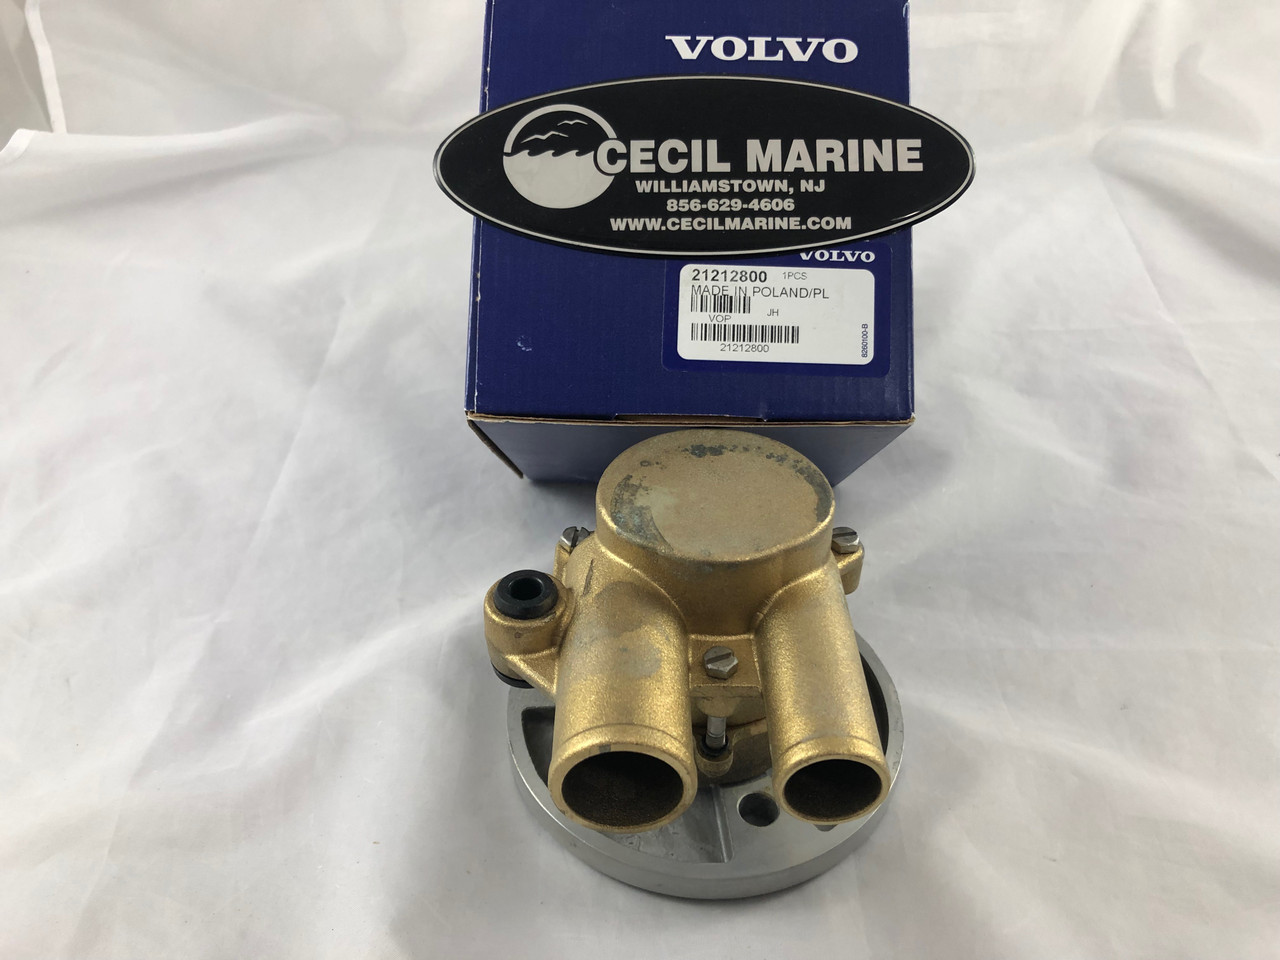 329 95 genuine volvo sea water pump 21212800 in stock ready to ship [ 1280 x 960 Pixel ]